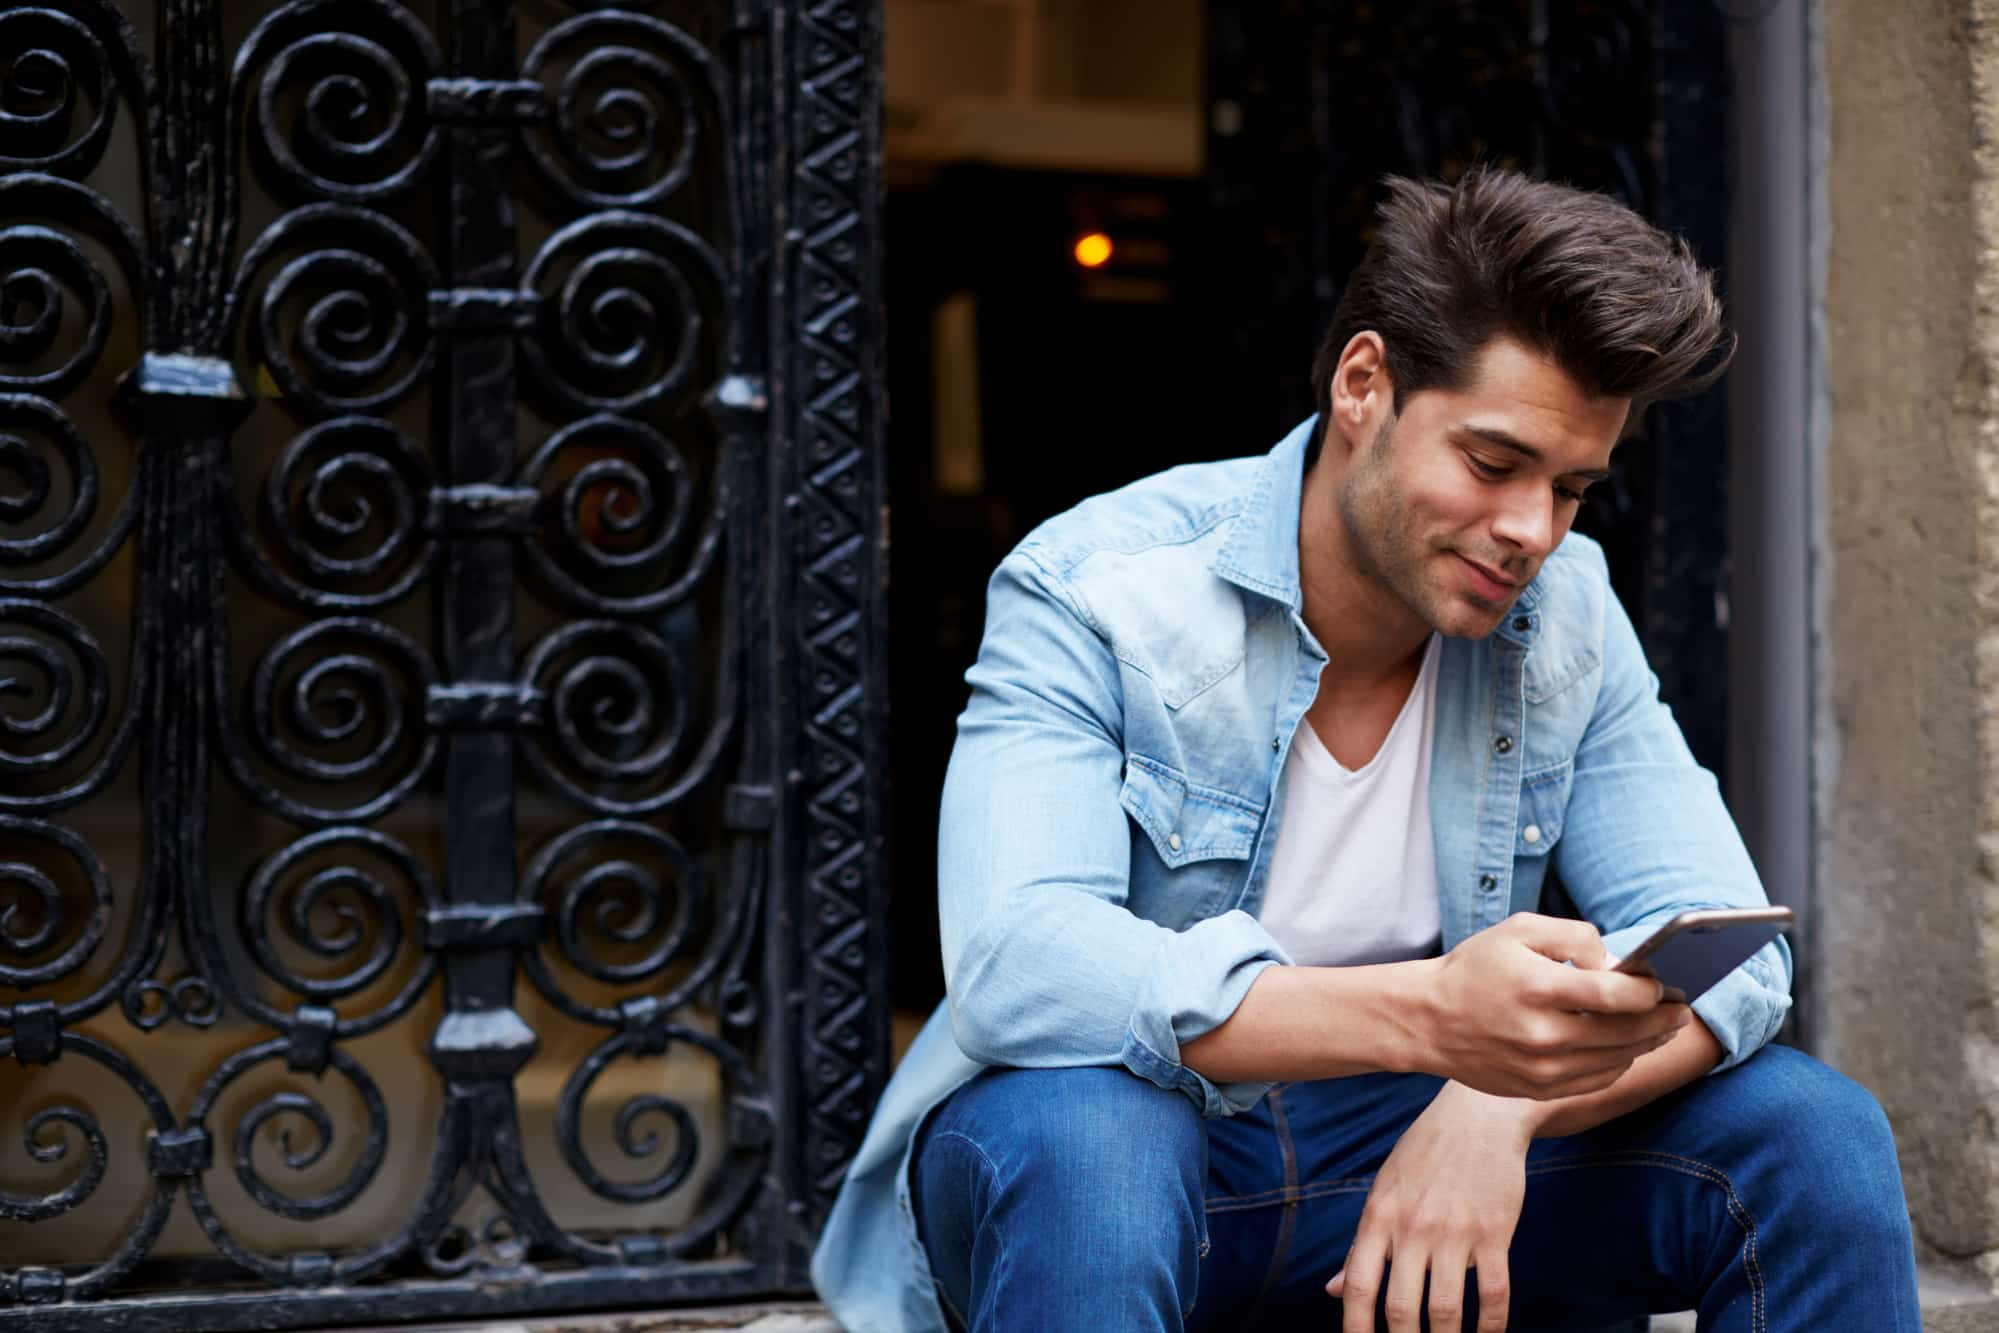 Text message ideas for crush